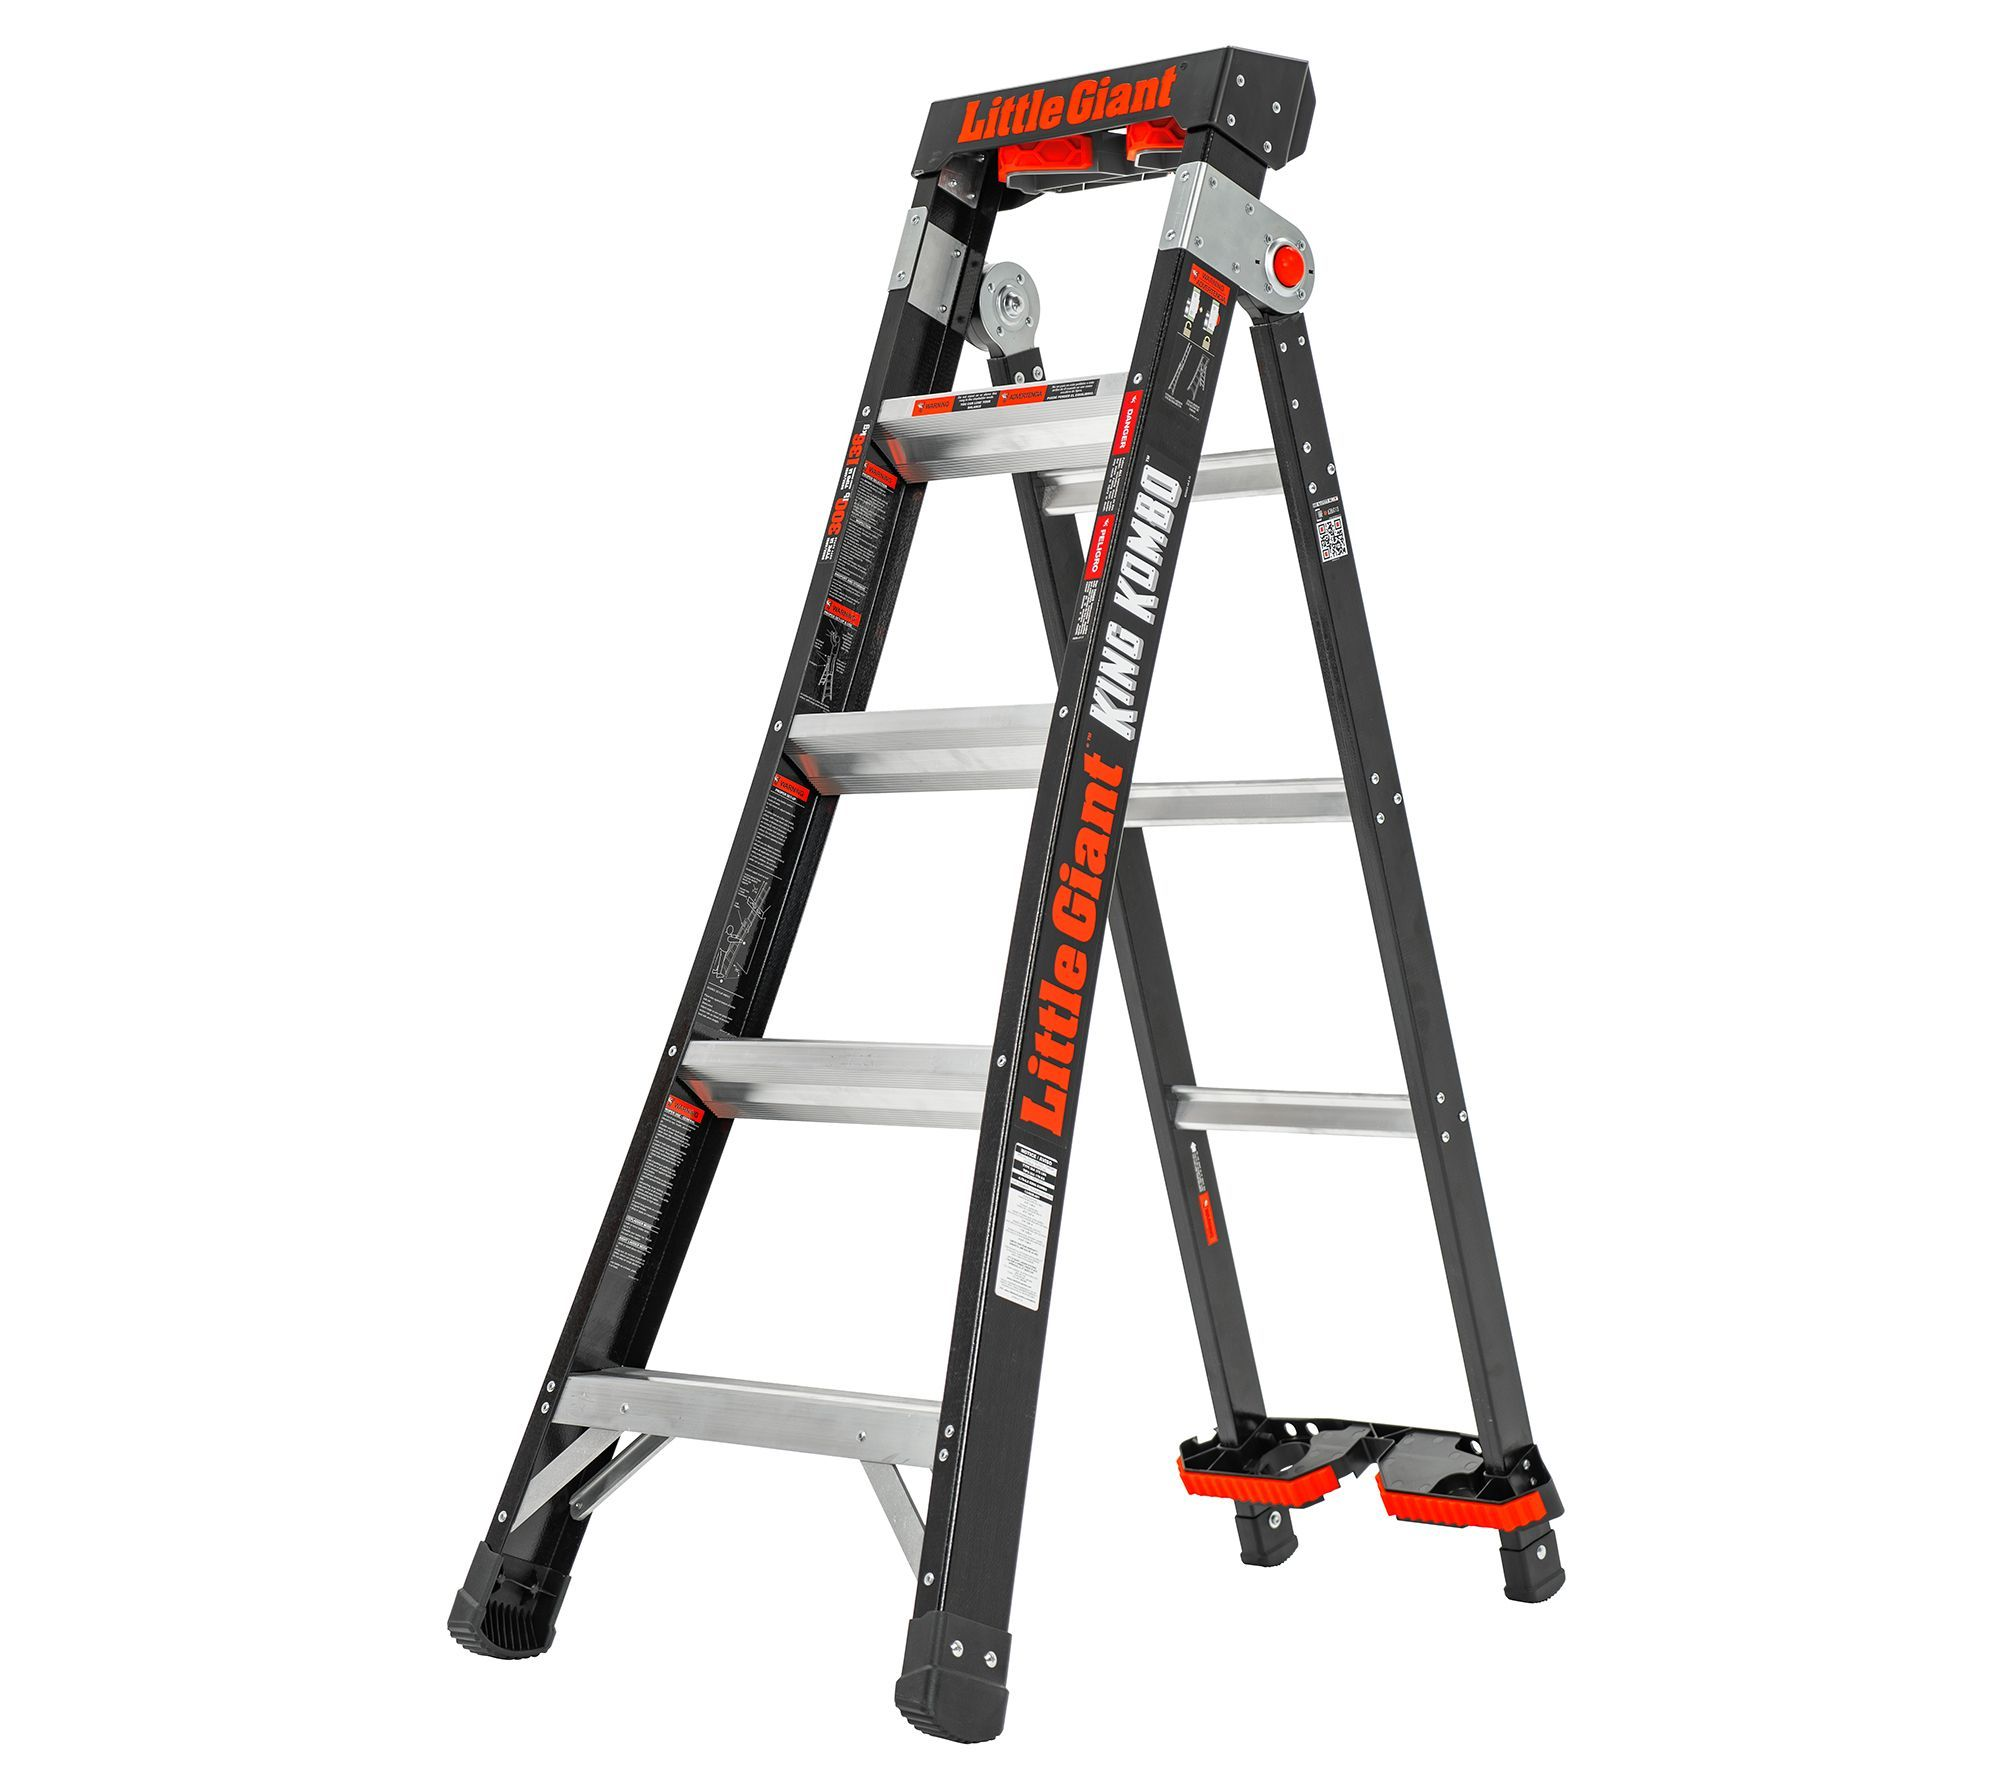 Little Giant King Kombo Multi Position Extendable Ladder Qvc Com Extendable Ladder Little Giants Ladder